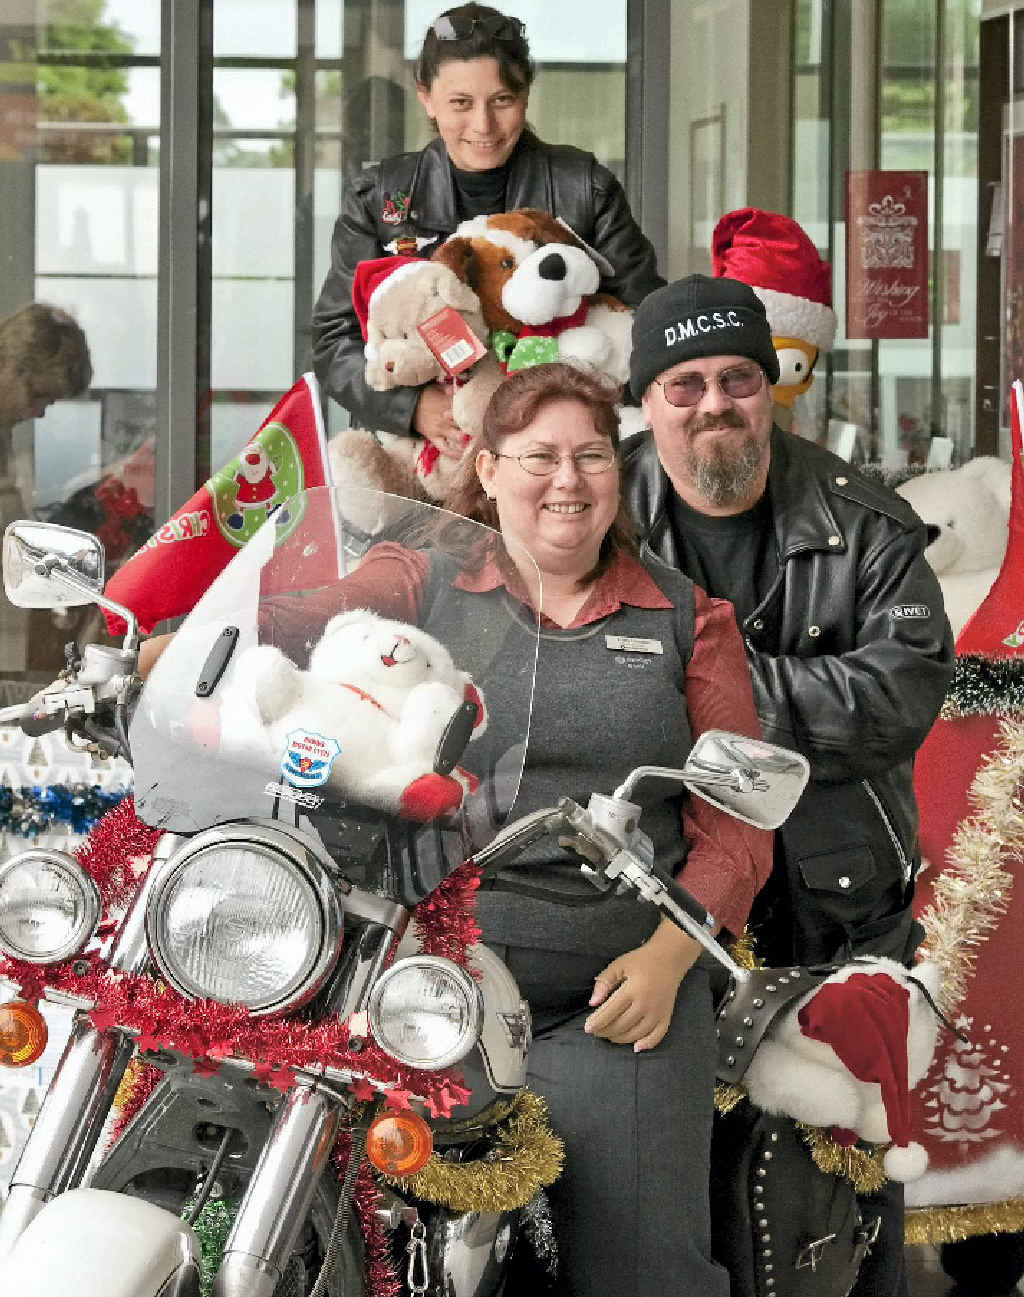 """All revved up for 25th annual Downs Motorcycle Sporting Club Toy Run are (from front) Bendigo Bank's Tracy Houlton, Michael """"Taz"""" Legard and Sue McKewin."""